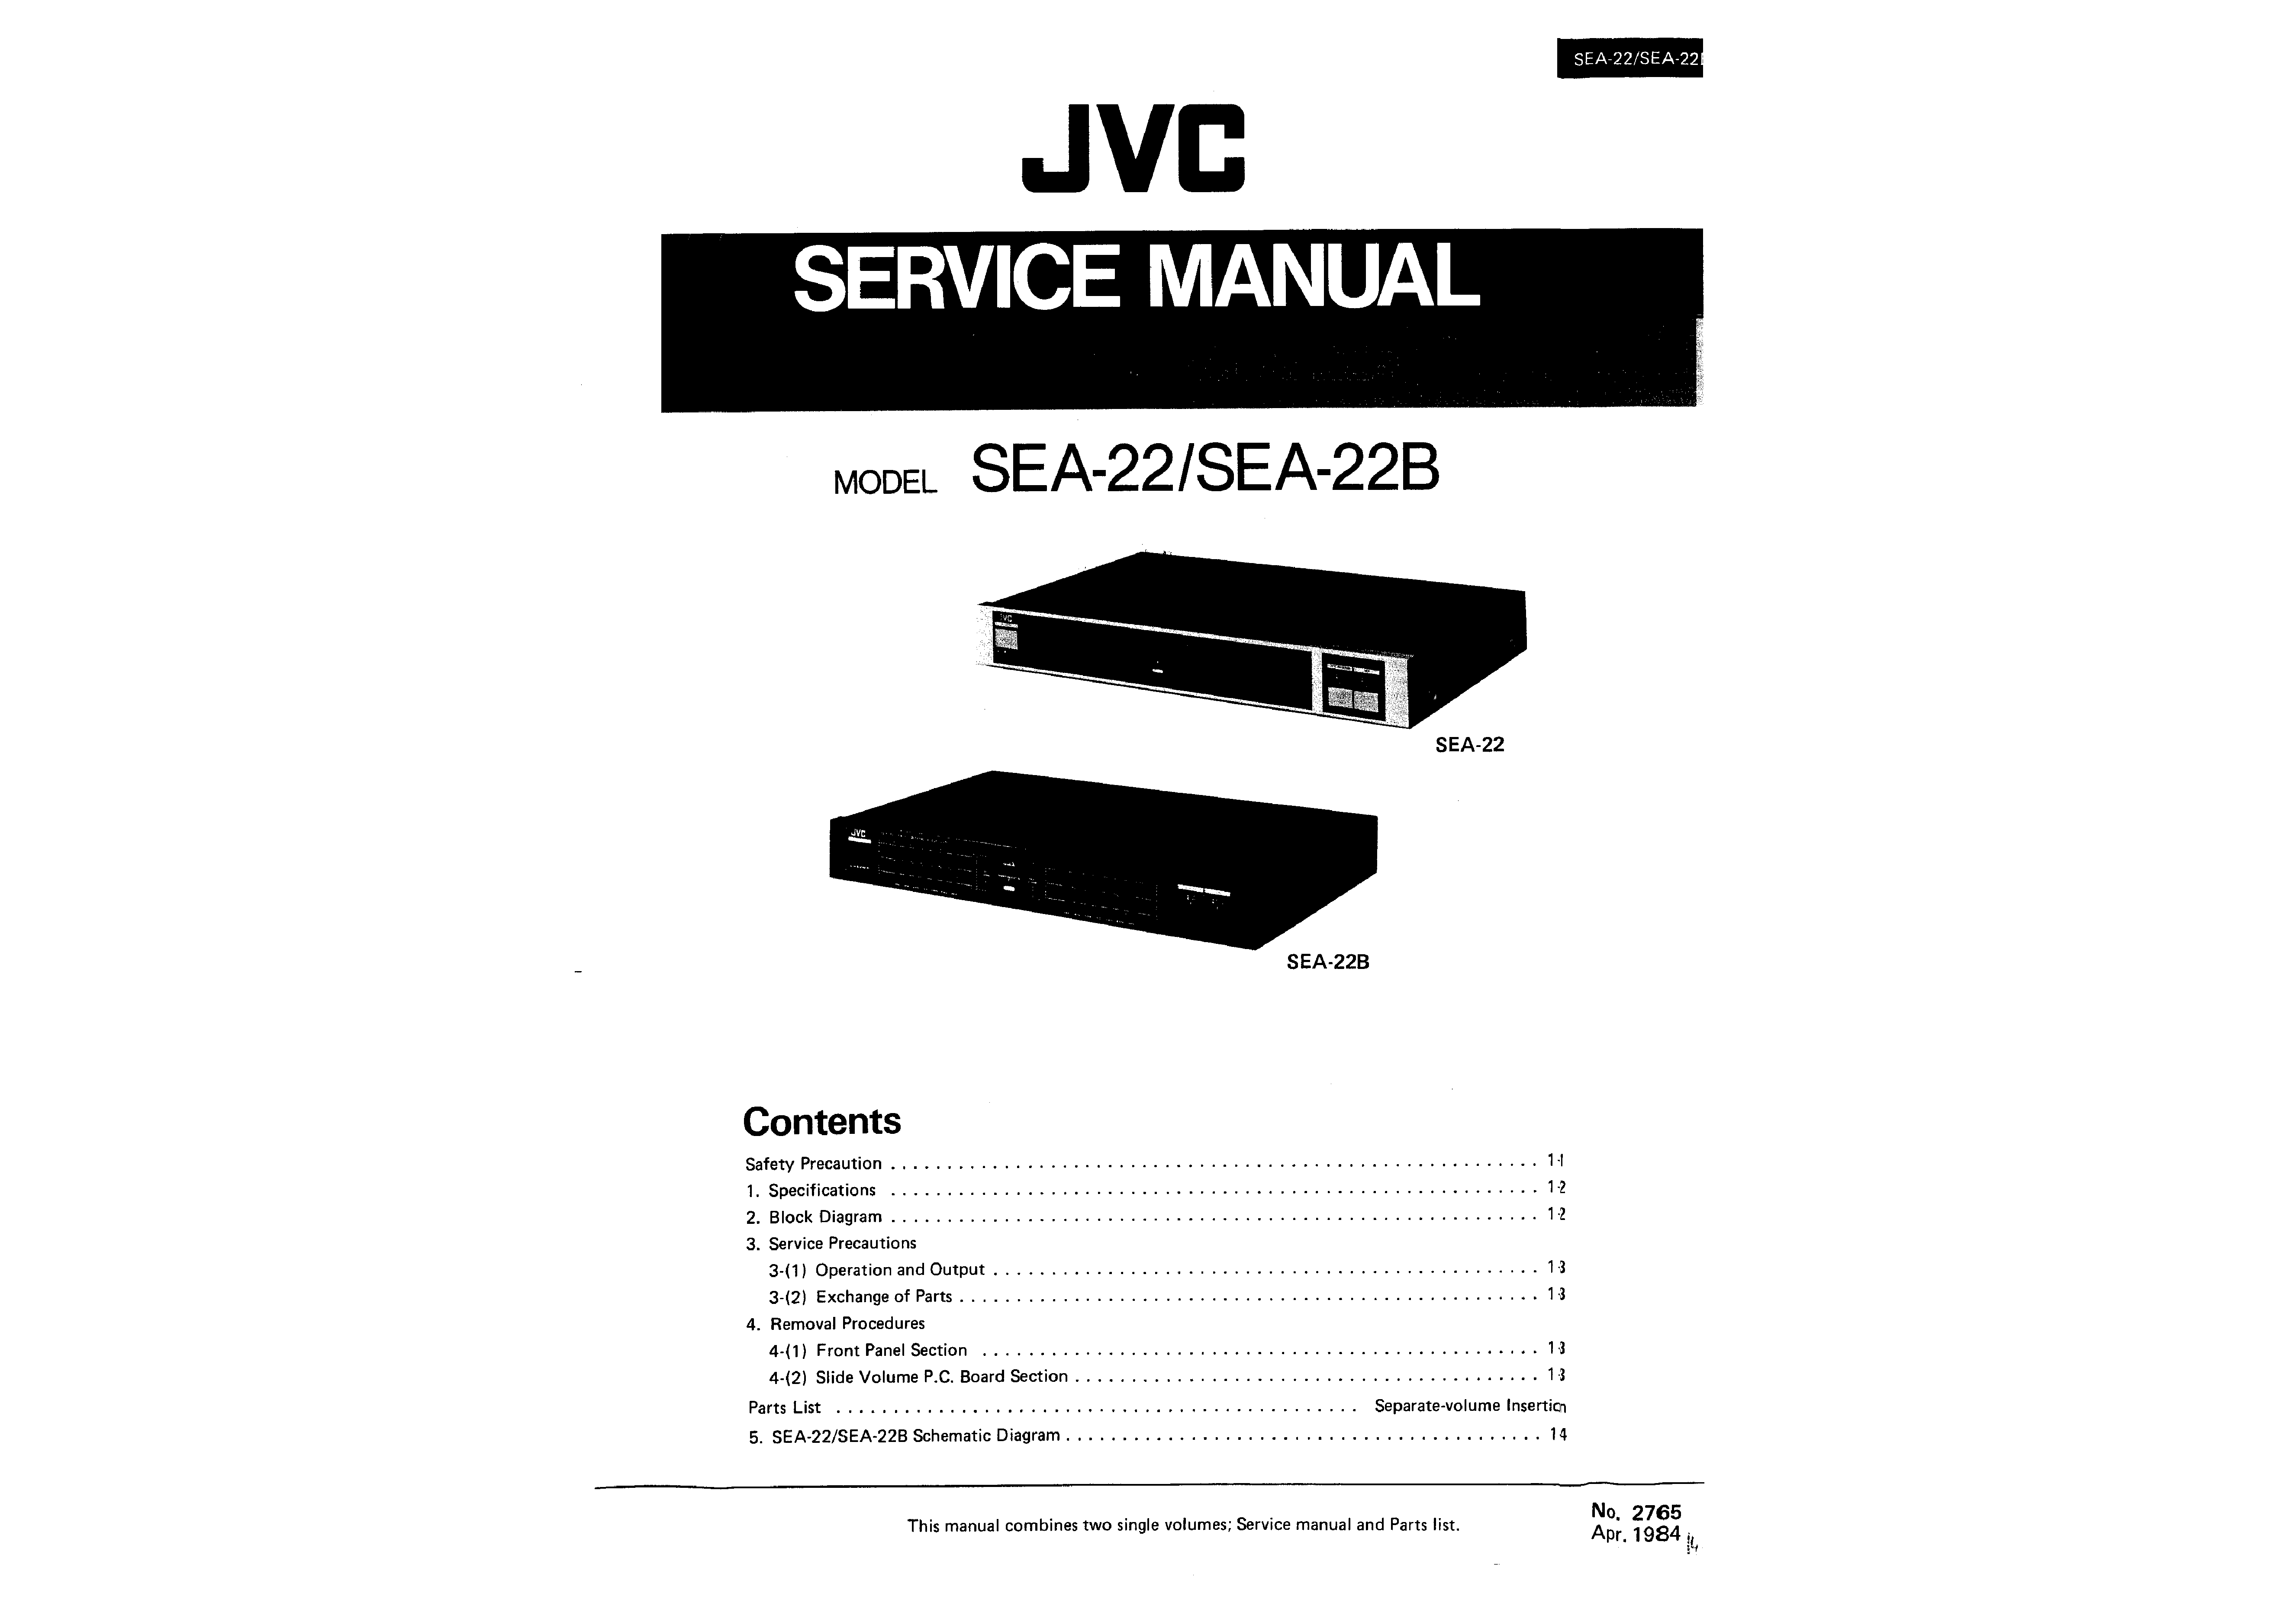 Sea22b Service Manual on jvc parts brand